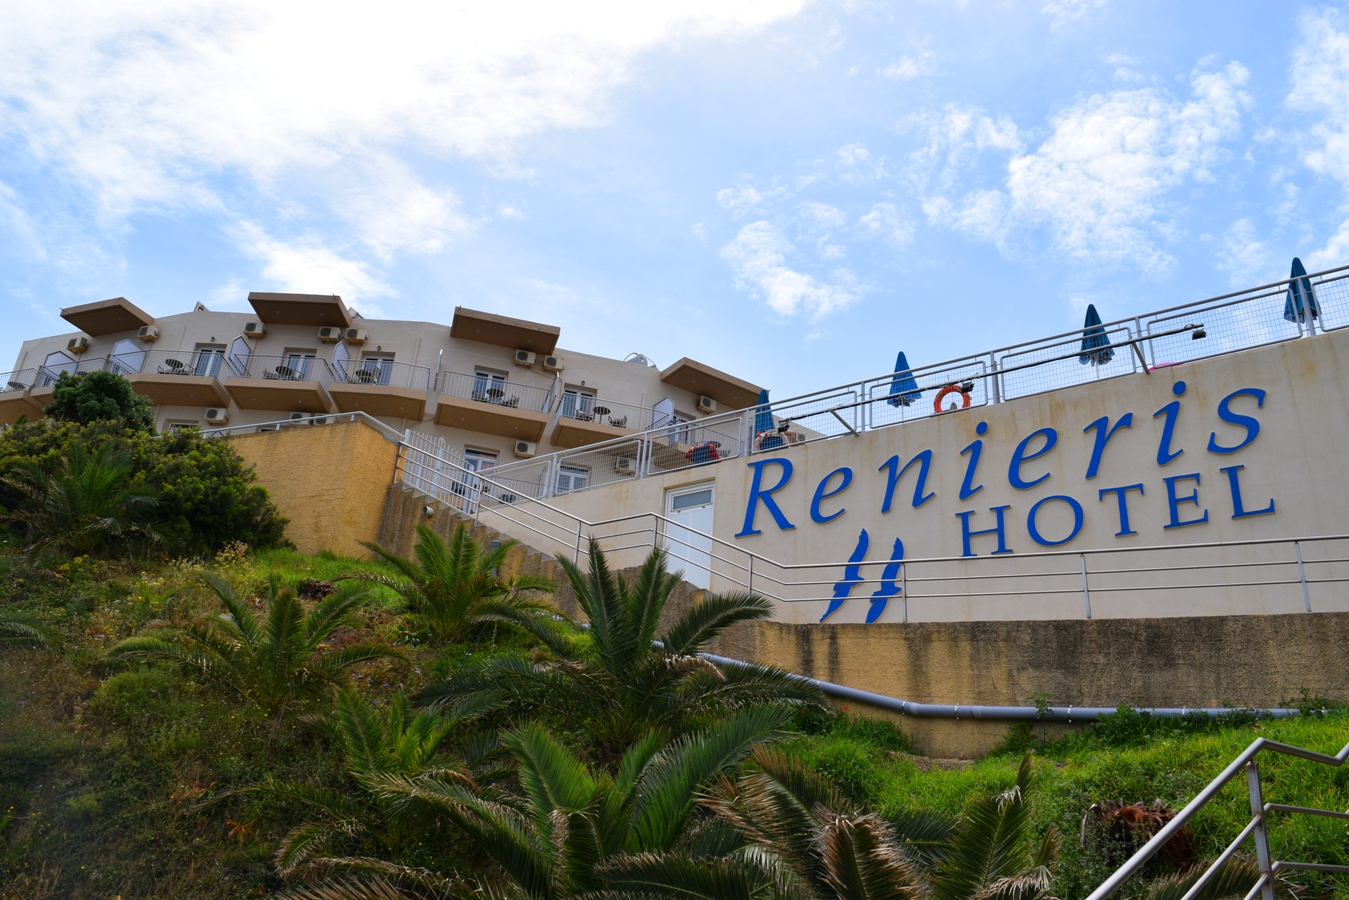 Renieris Hotel: Quiet place with a great view (Review) | The Cheerful Wanderer